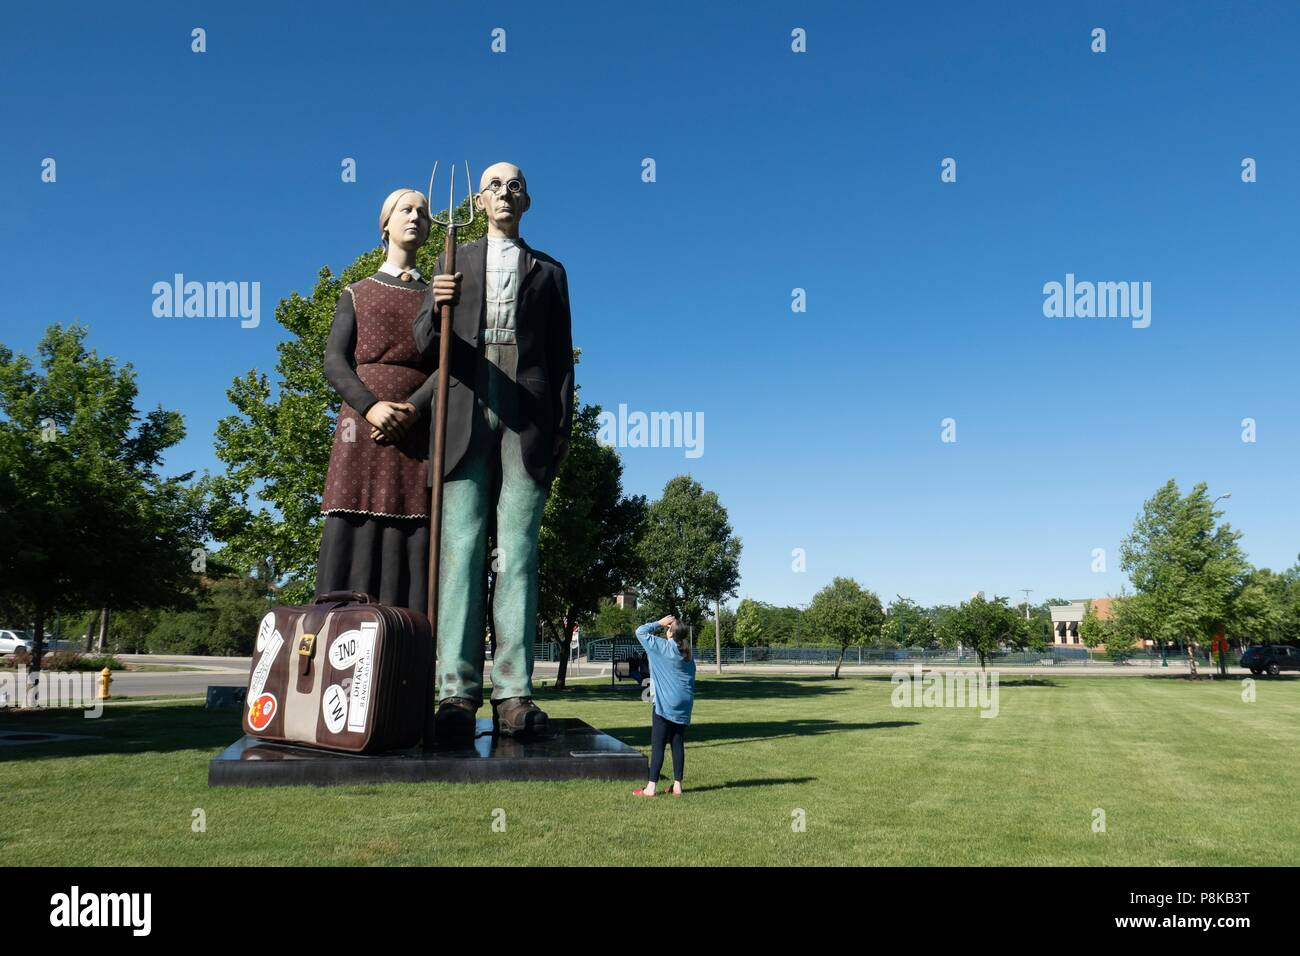 A tourist looking at Seward Johnson's 25 foot statue 'God Bless America' in Elkhart Indiana's Central Park. It is a 3-dimensional re-creation of the i - Stock Image